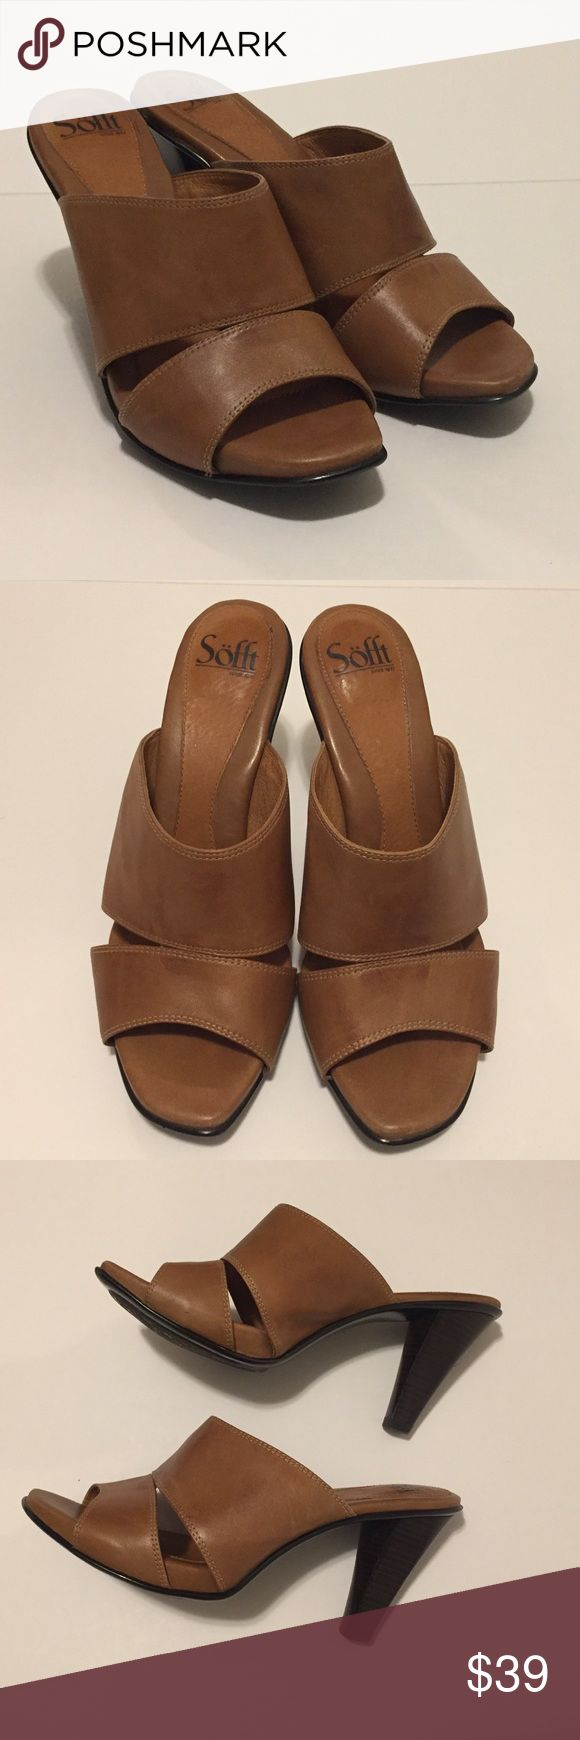 SOFFT Open Toed Heels Size 9M These are in excellent shape, beautiful camel color, soft leather and cushioning to keep the feet comfortable and happy.  Size 9M Sofft Shoes Heels